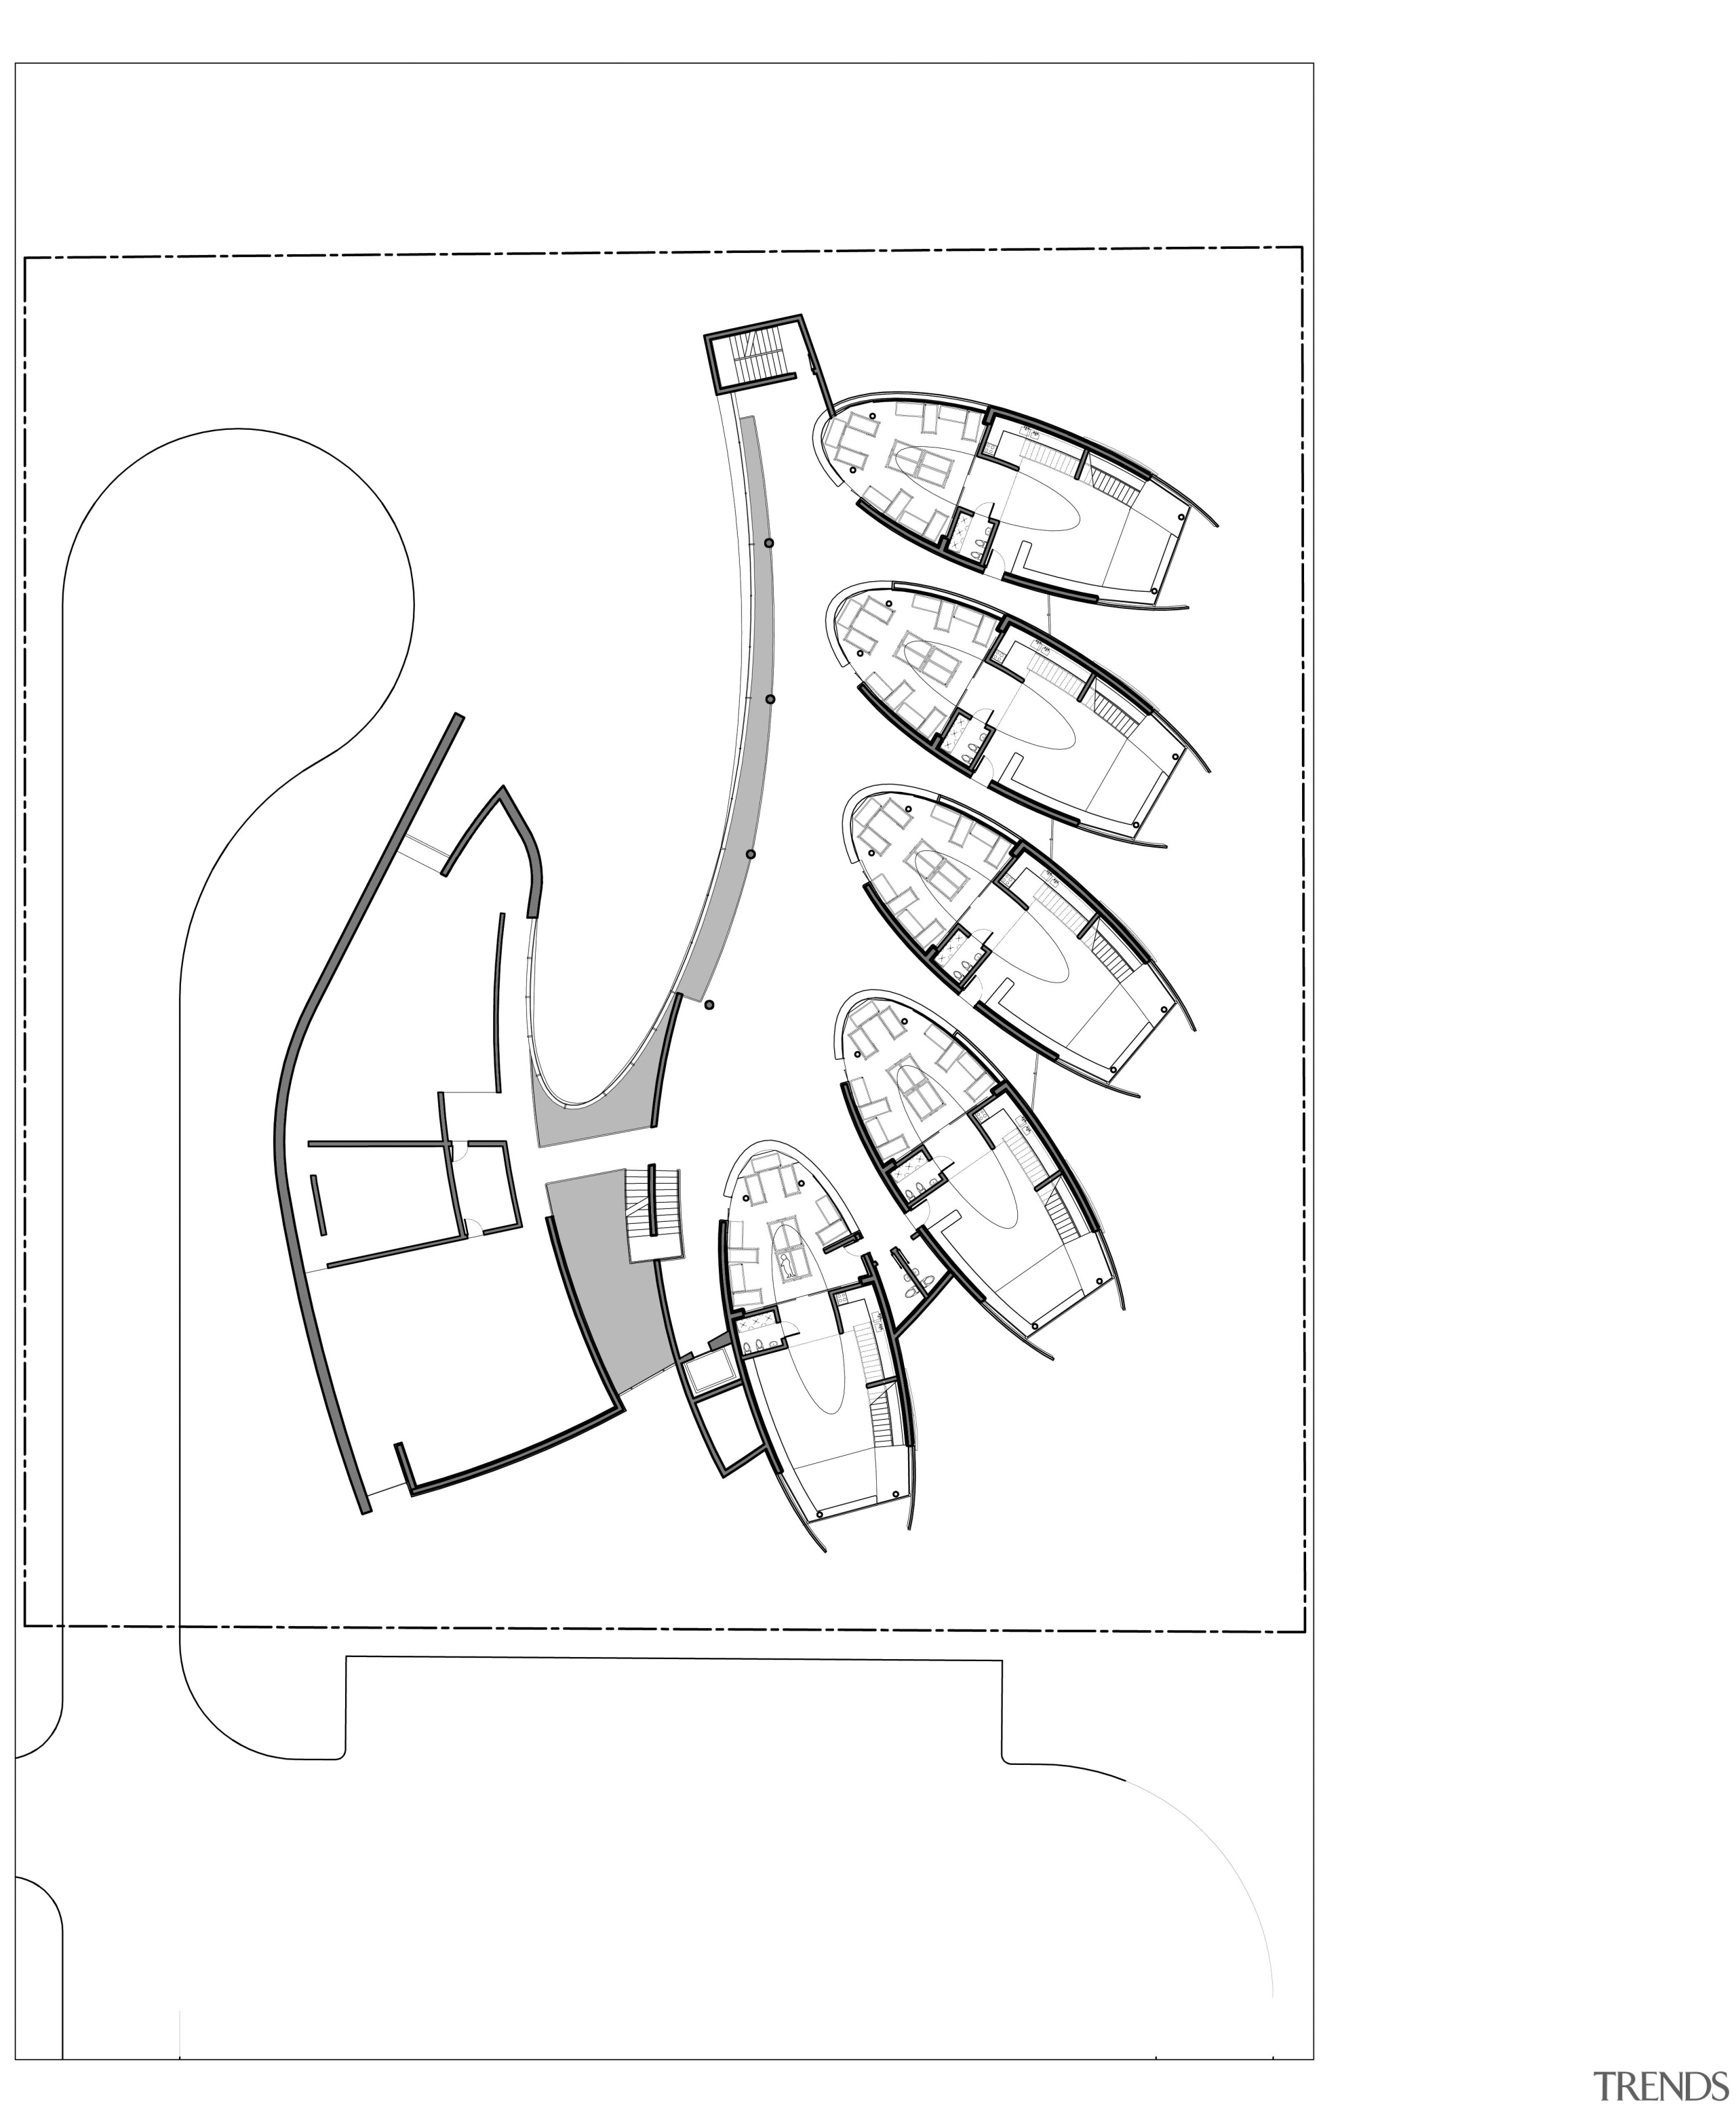 Floorplan of Dalian Preschool, with curvilinear forms and angle, area, artwork, black and white, cartoon, design, diagram, drawing, finger, font, footwear, hand, joint, line, line art, monochrome, paper, pattern, product, product design, shoe, sketch, text, white, white